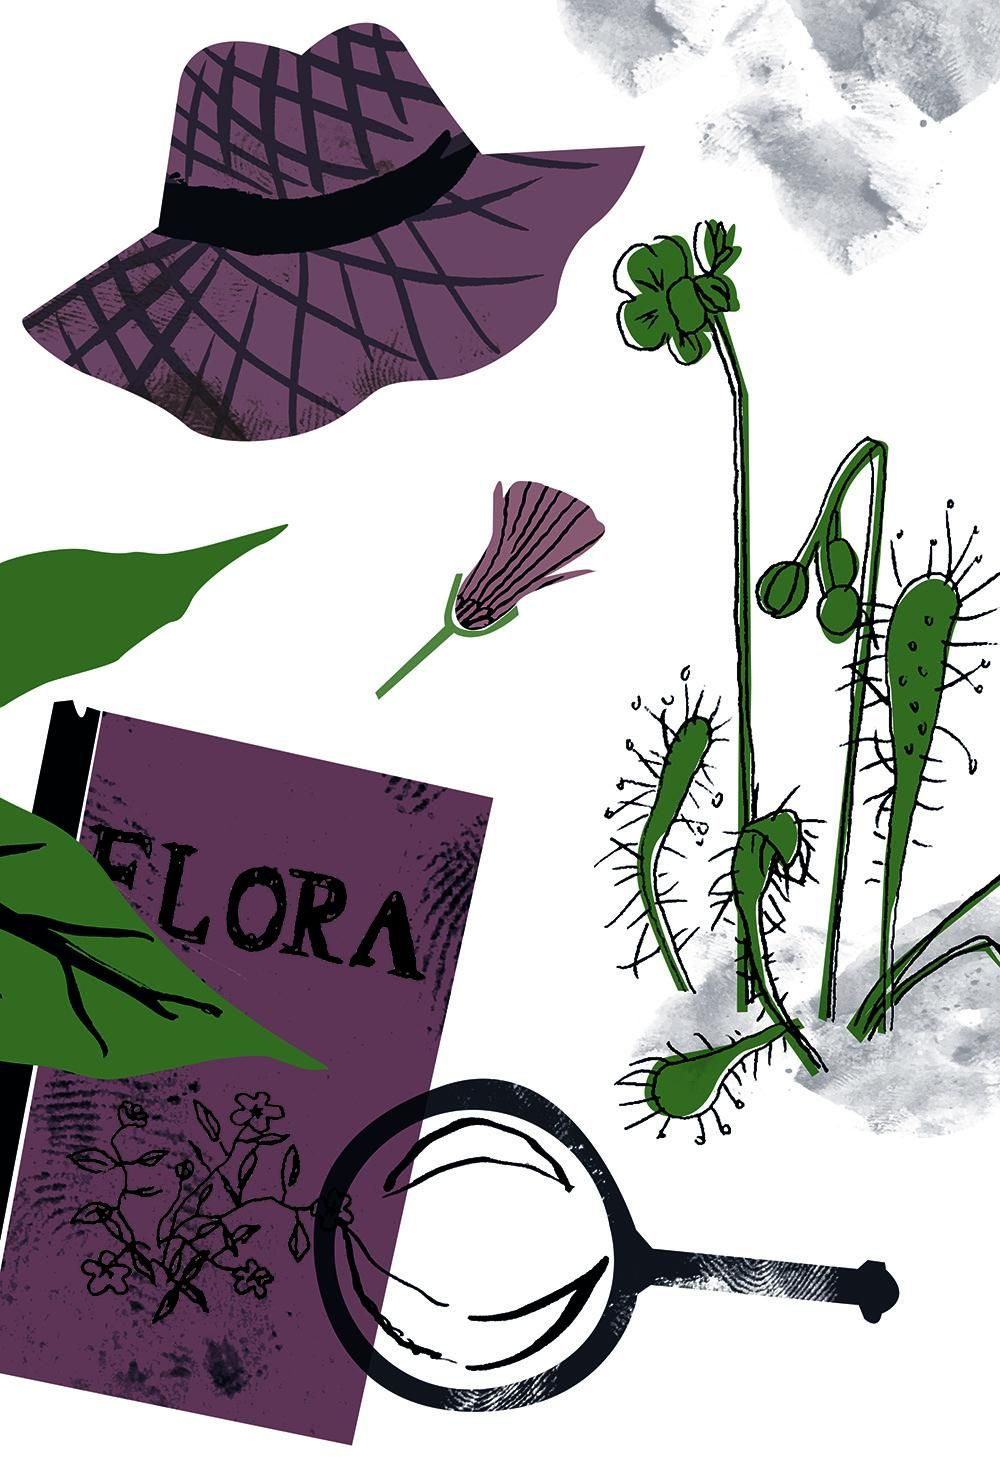 Tools of a botanist - image 3 - student project